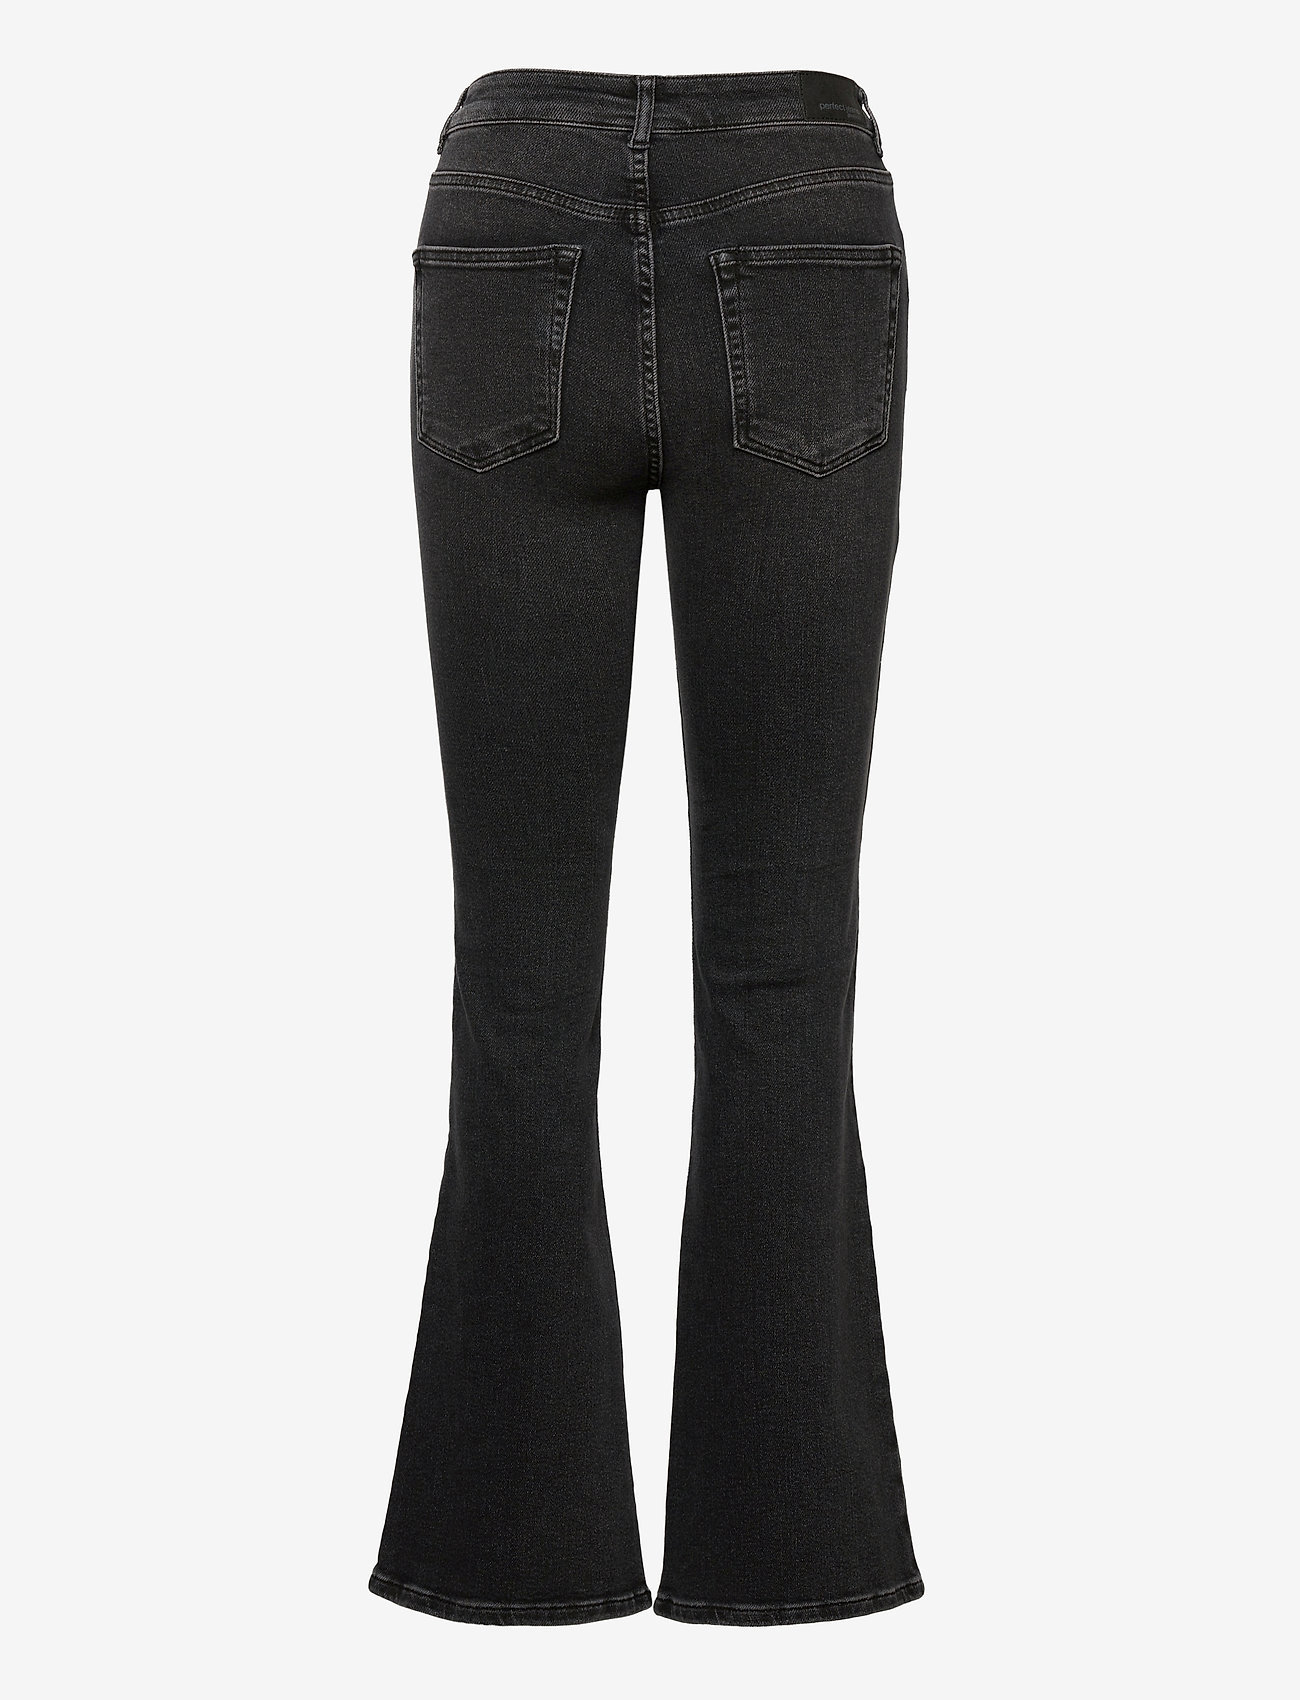 Gina Tricot - Meja flare jeans - schlaghosen - black/grey - 1